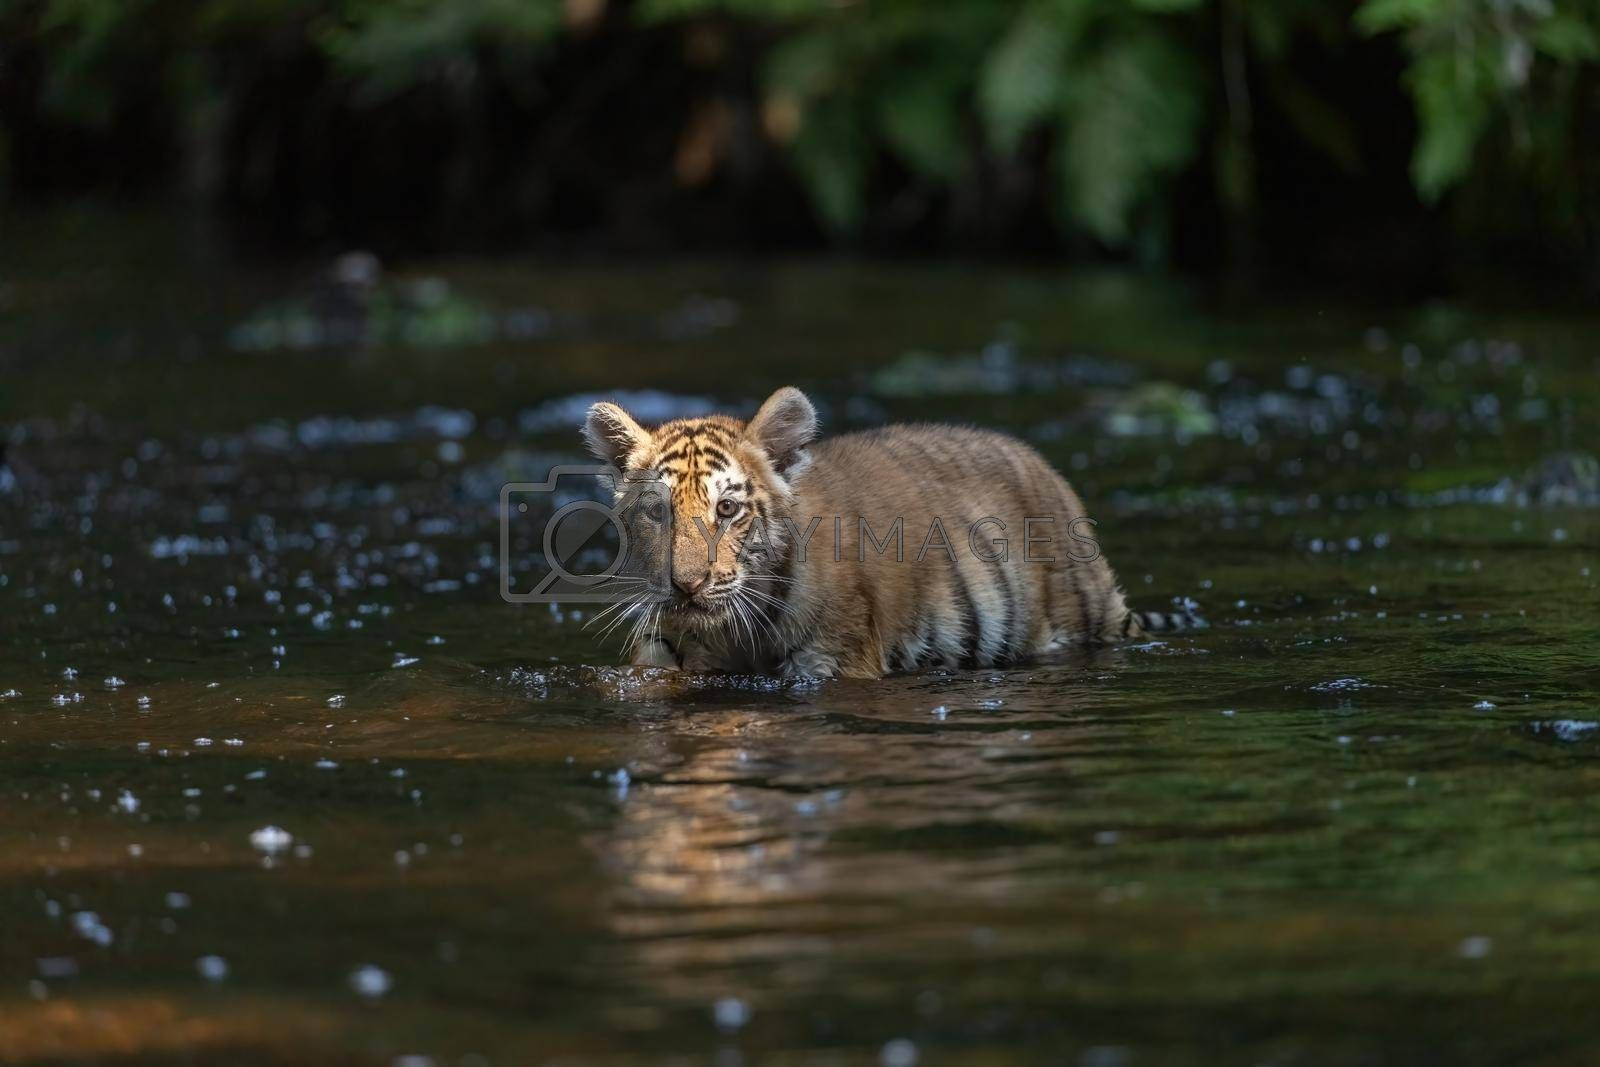 Royalty free image of Bengal tiger cub is walking in the river by Frank11